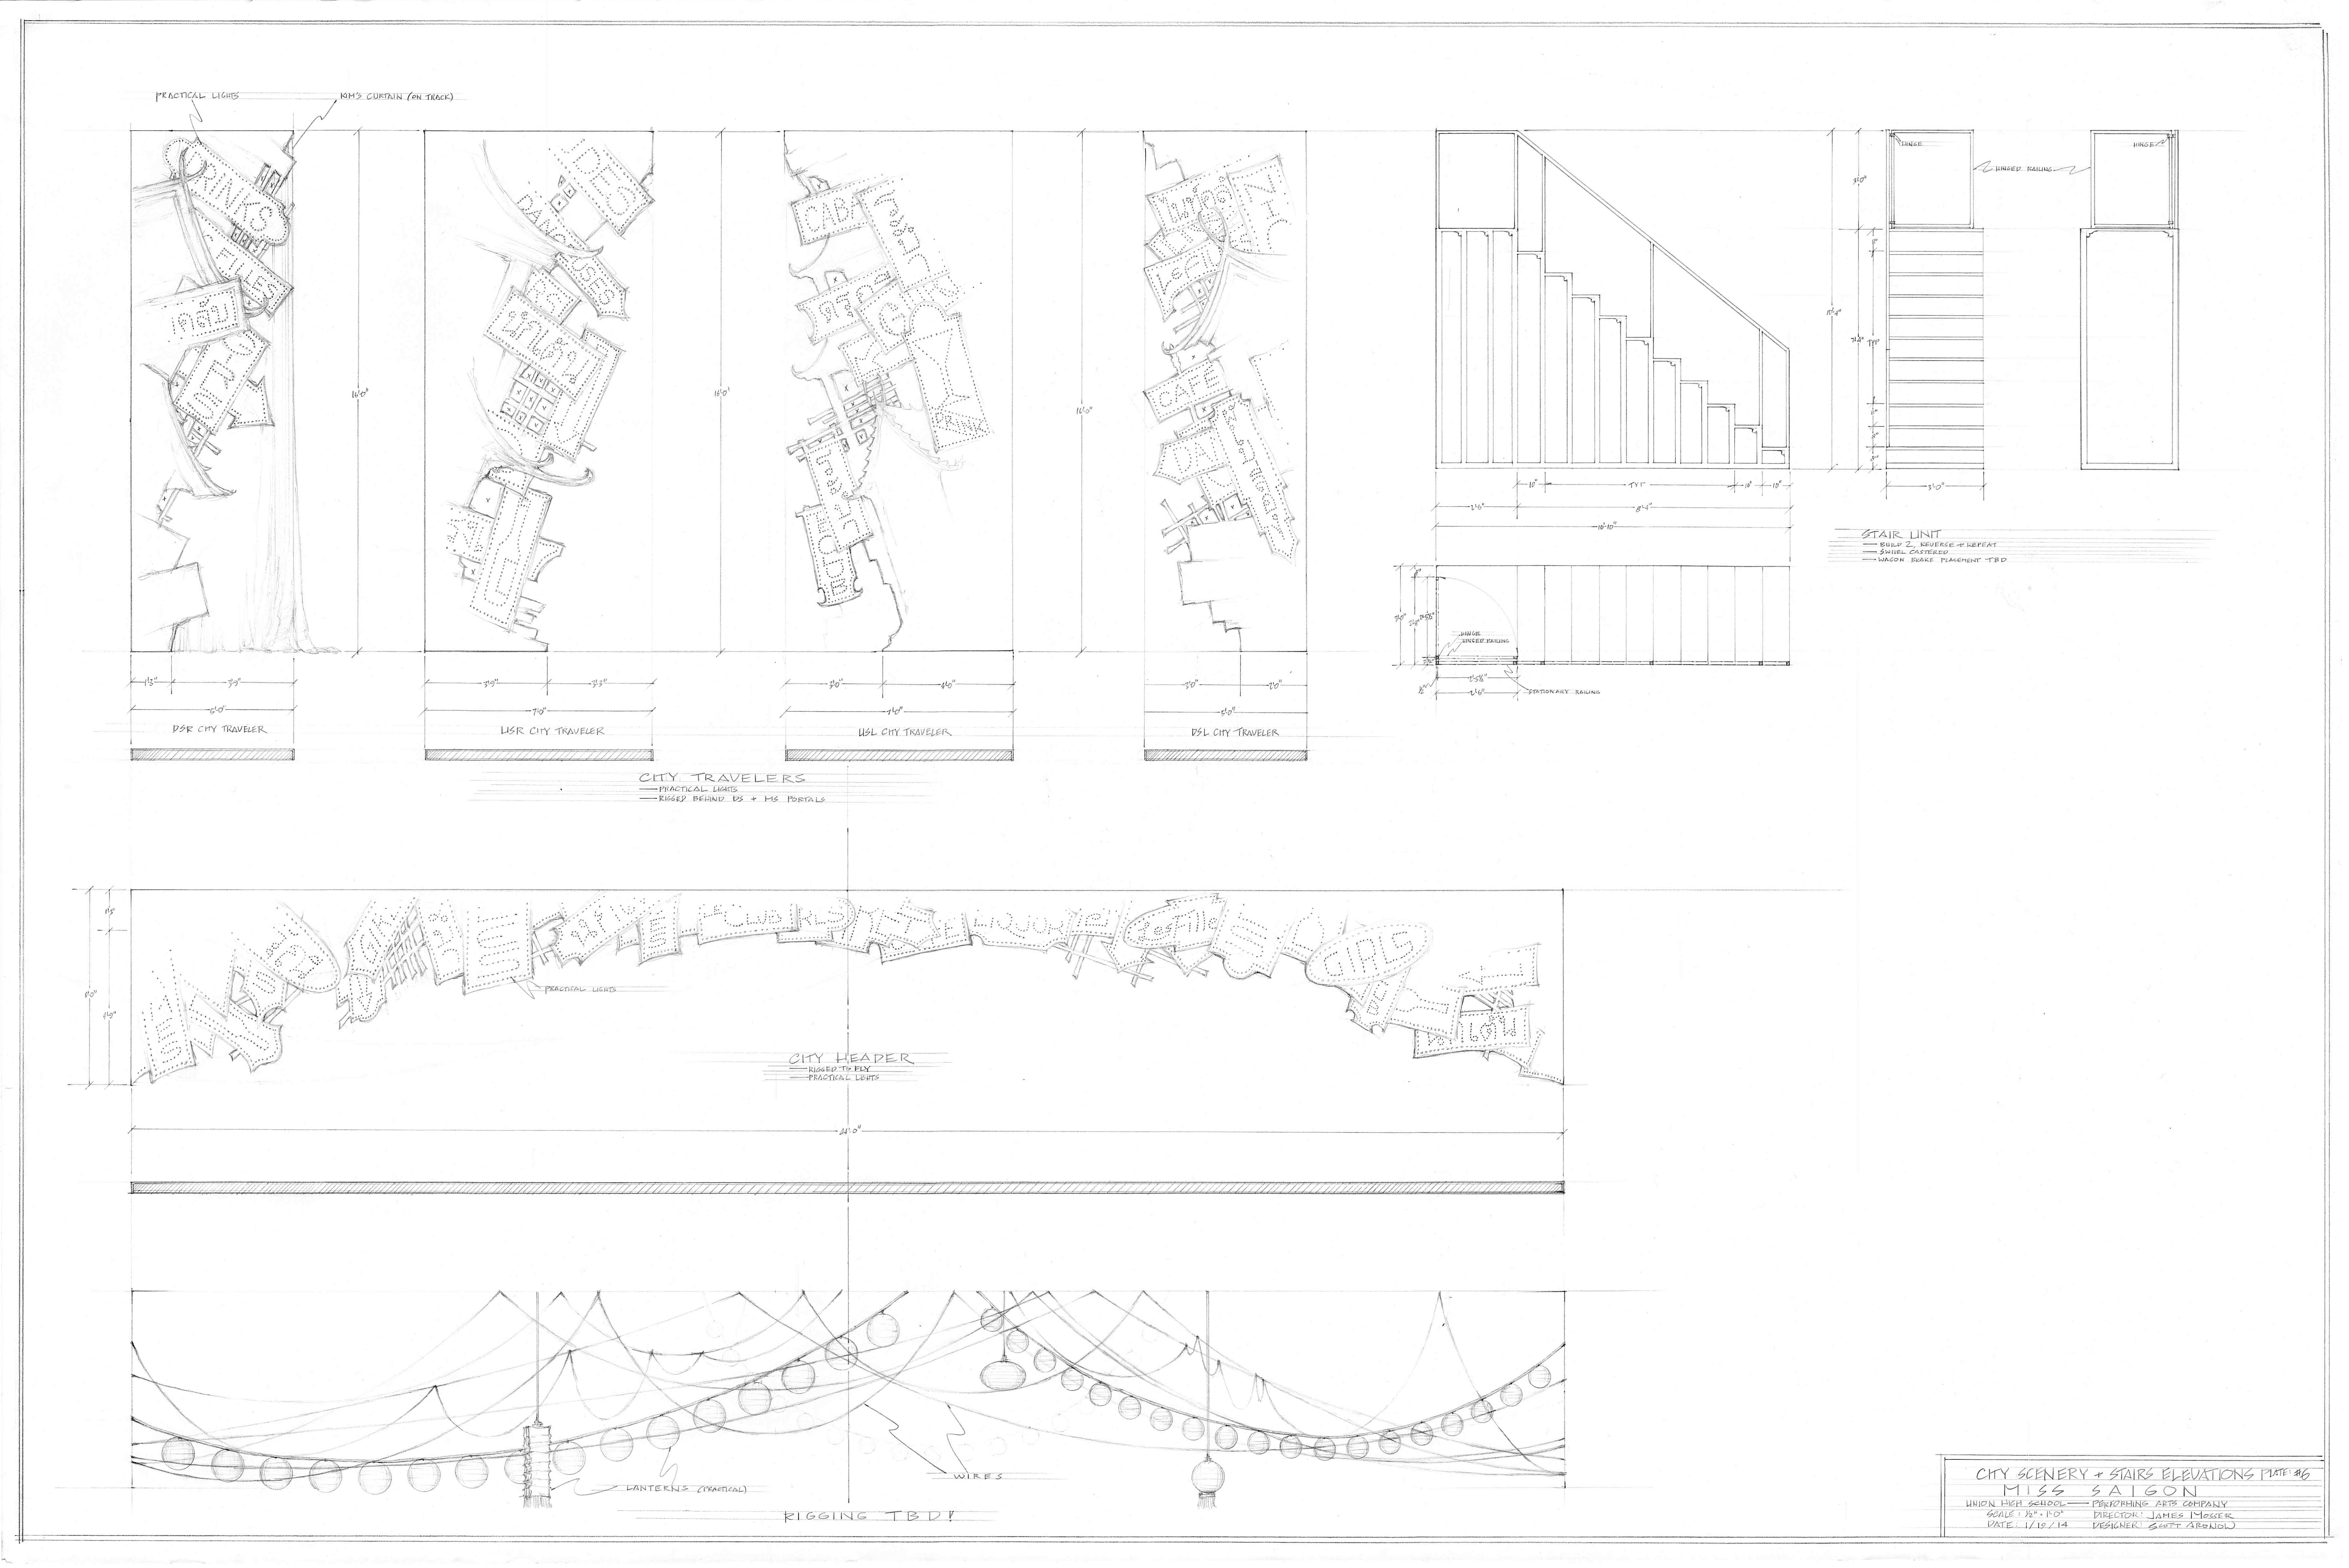 Plate #6. City Scenery and Stair Unit Elevations